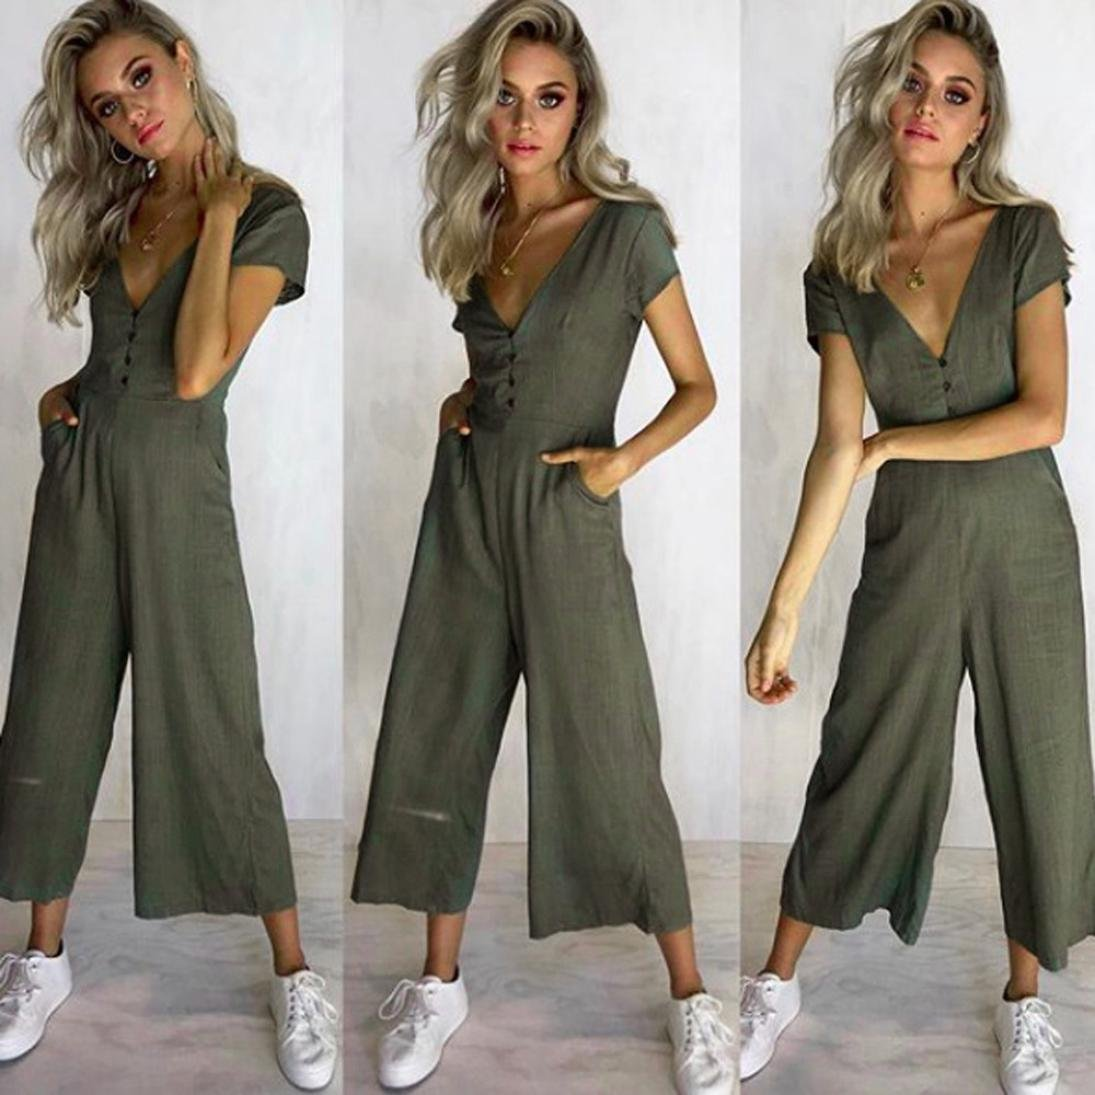 Dreaman Womens Summer Casual V-Neck Sexy Short Sleeve Strappy Holiday Long Playsuits Trouser Jumpsuit Romper (Khaki, l)